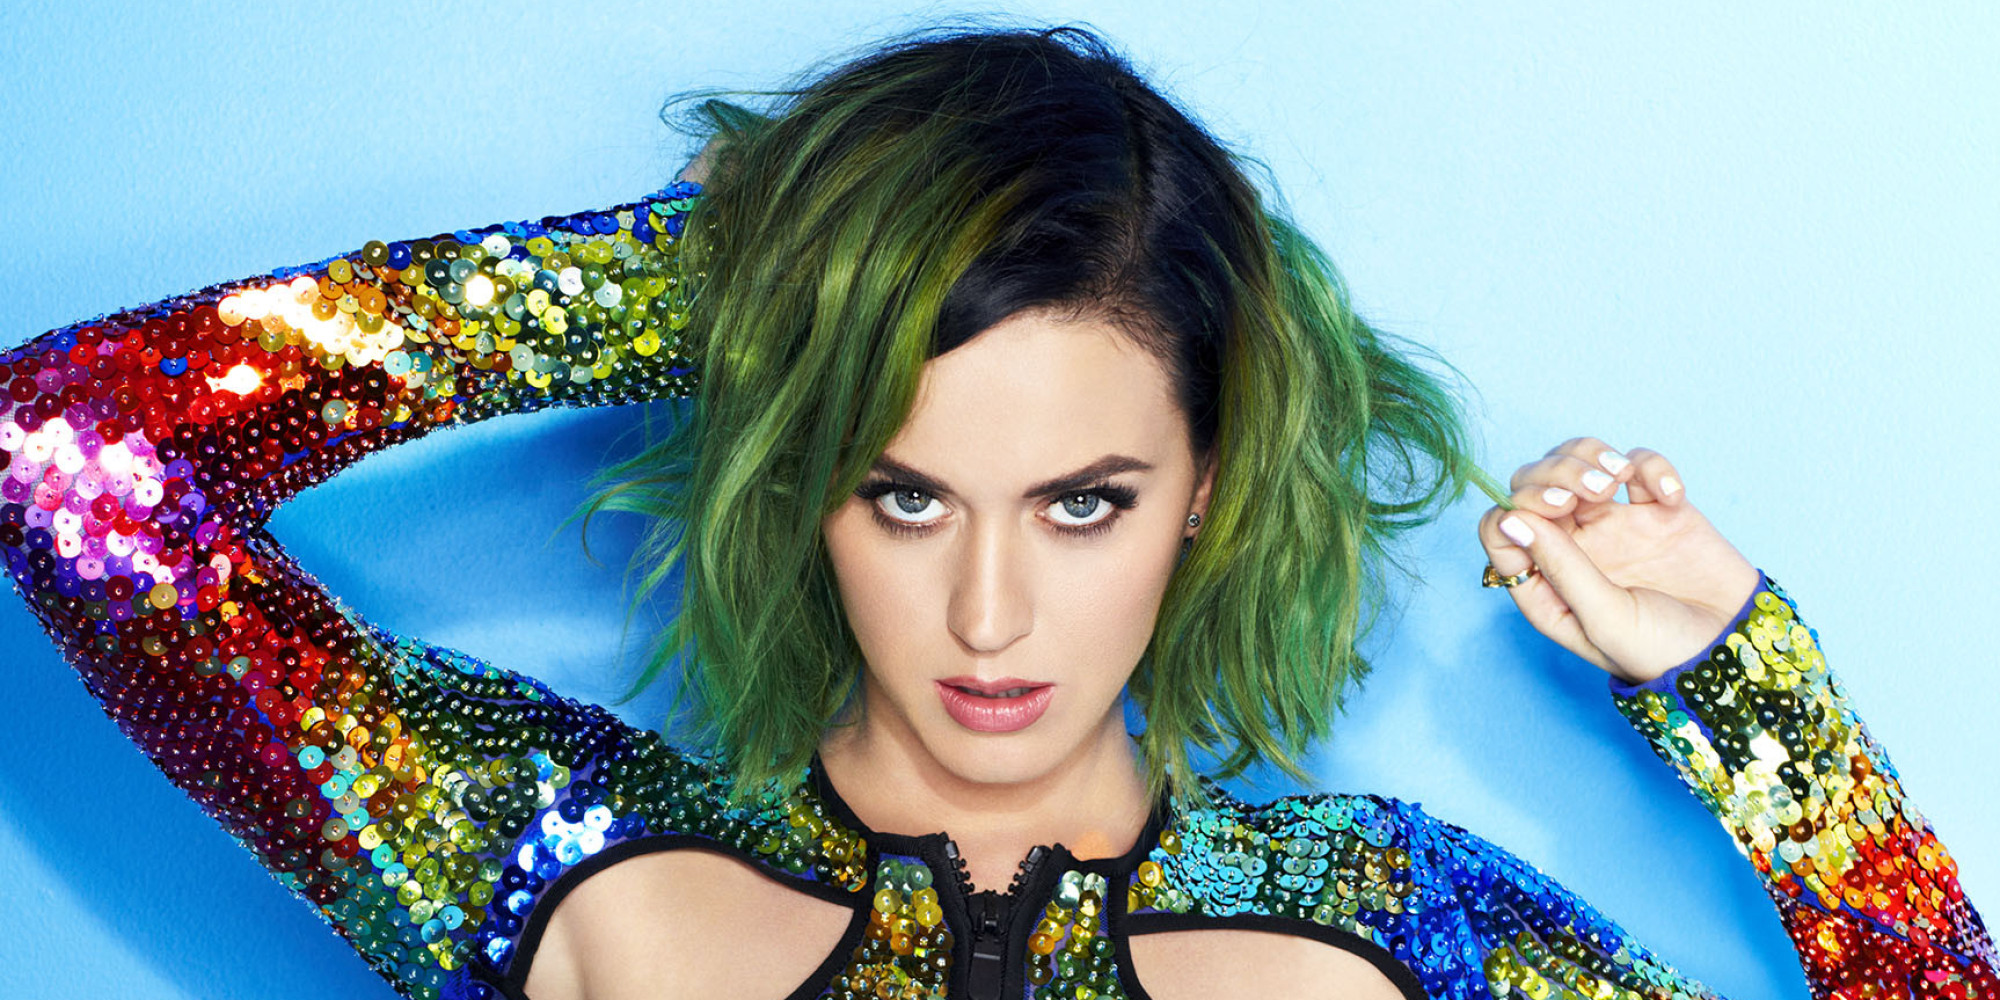 Katy Perry Becomes Cosmopolitan's First Ever Global Cover Star (VIDEO) Katy Perry